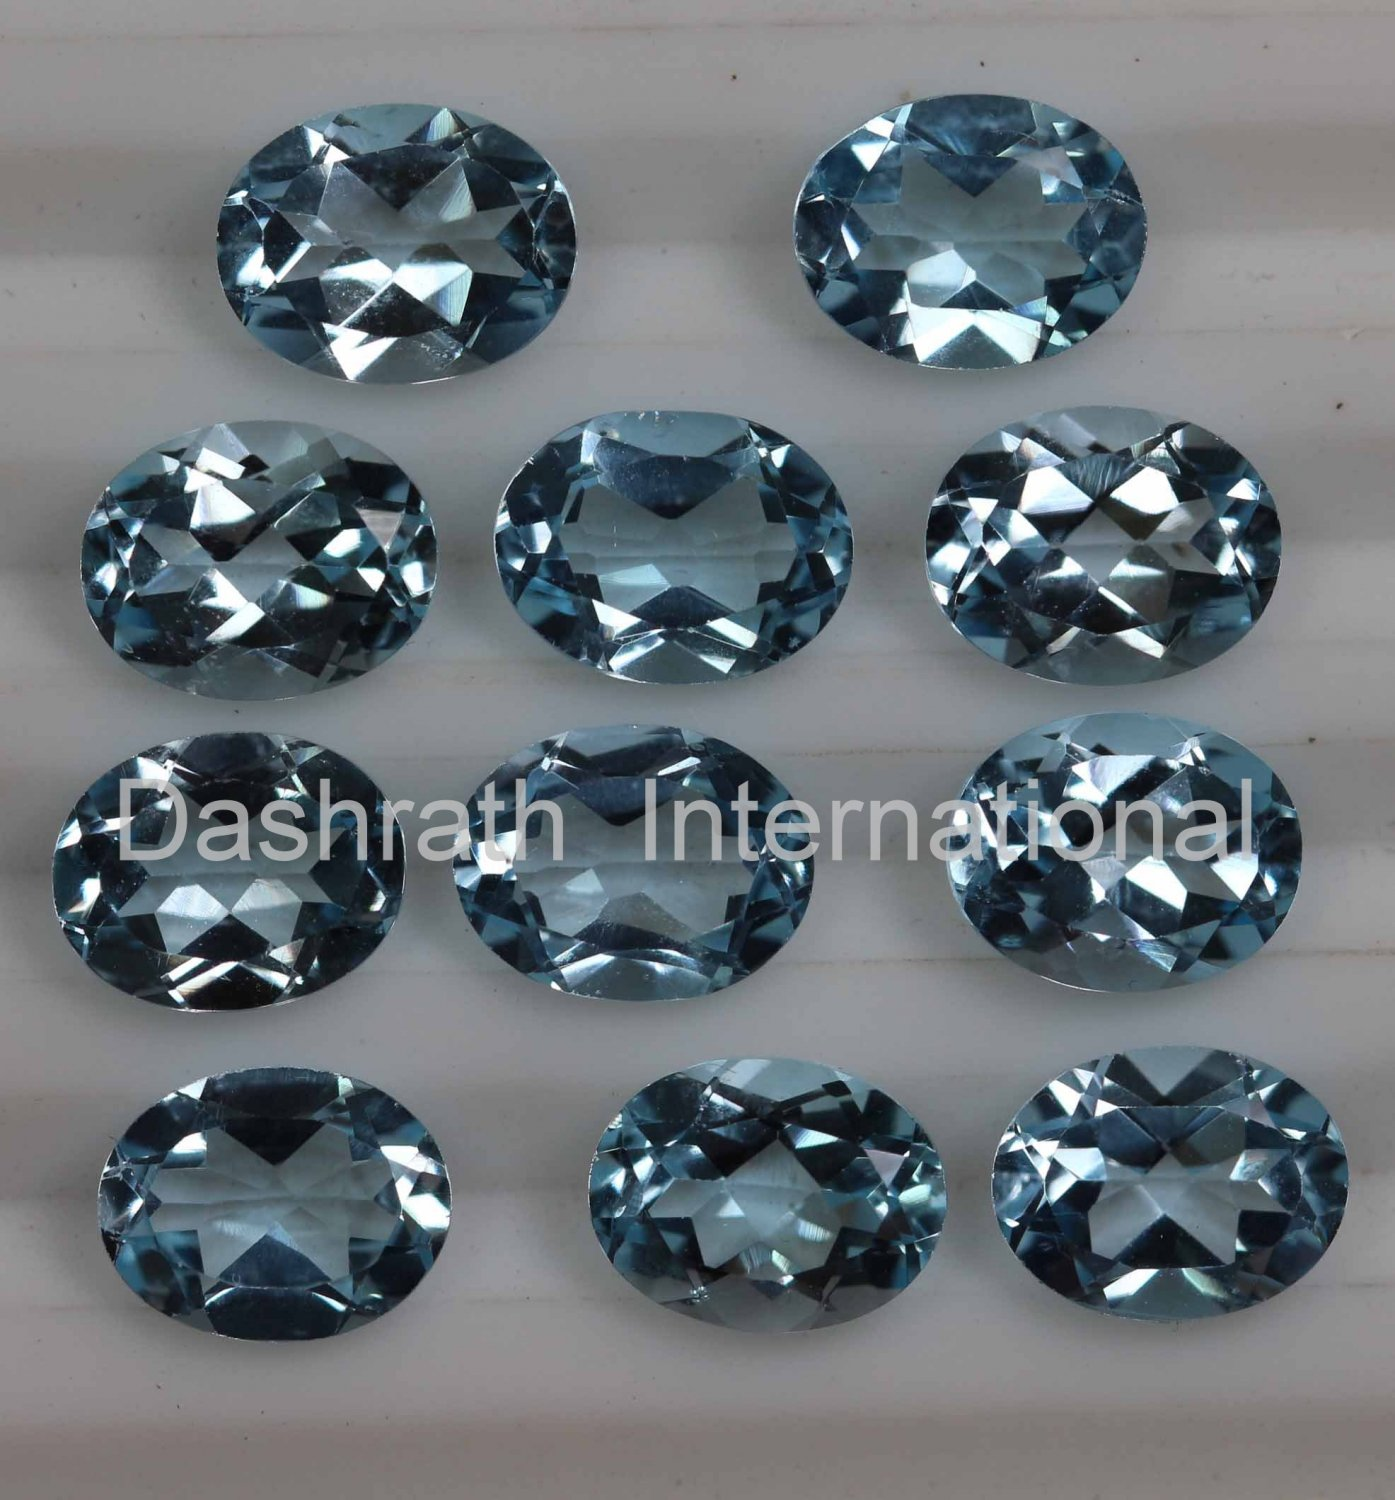 4x6mm  Natural Sky Blue Topaz Faceted Cut Oval  50 Pieces Lot  Top Quality Loose Gemstone